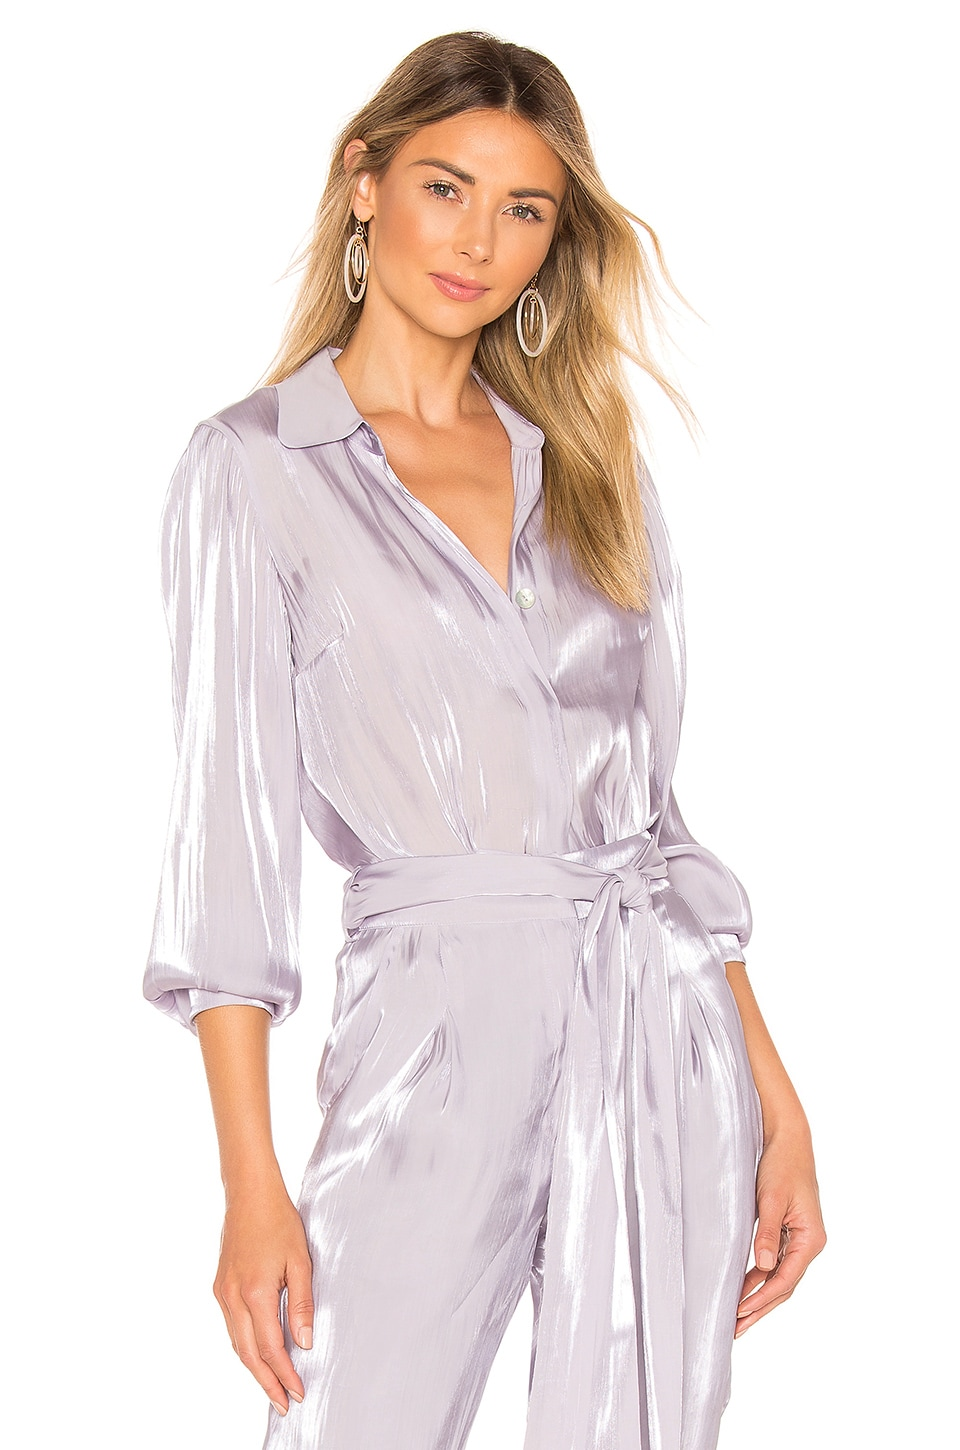 House of Harlow 1960 x REVOLVE Daniela Button Down in Lilac